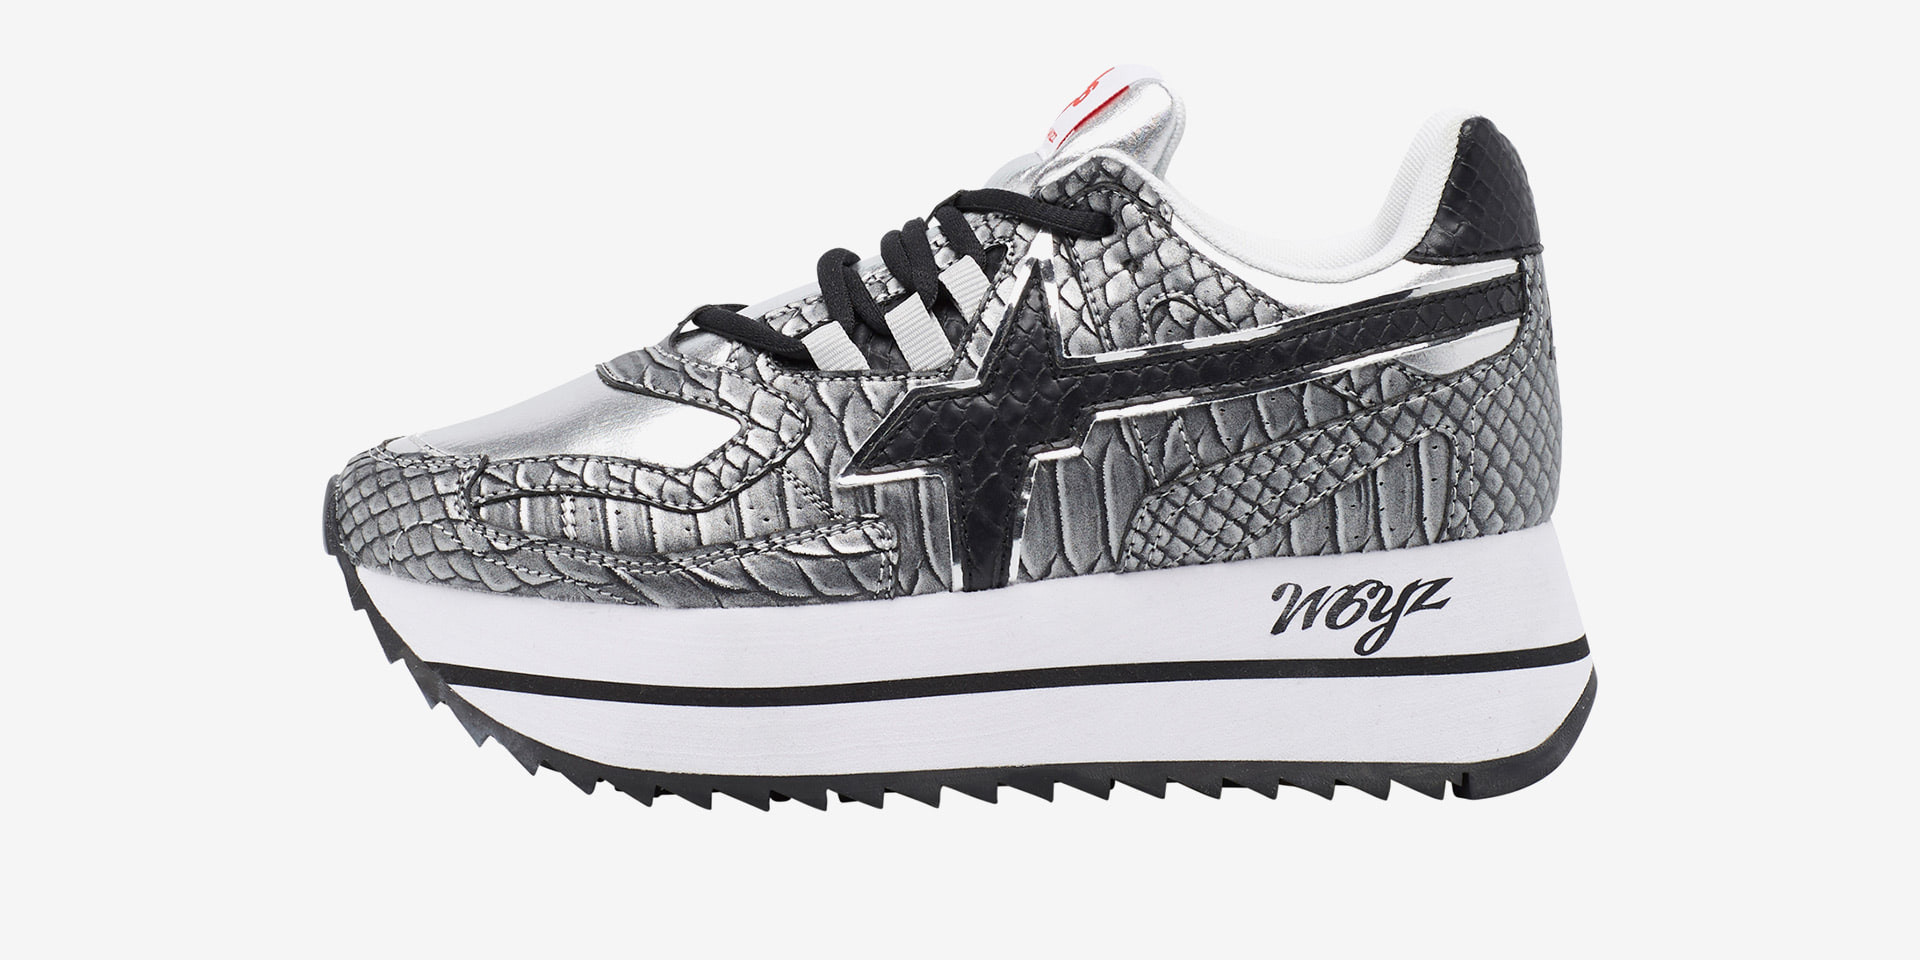 DEBBY-W. - Sneaker in technical fabric with print - Grey/Black